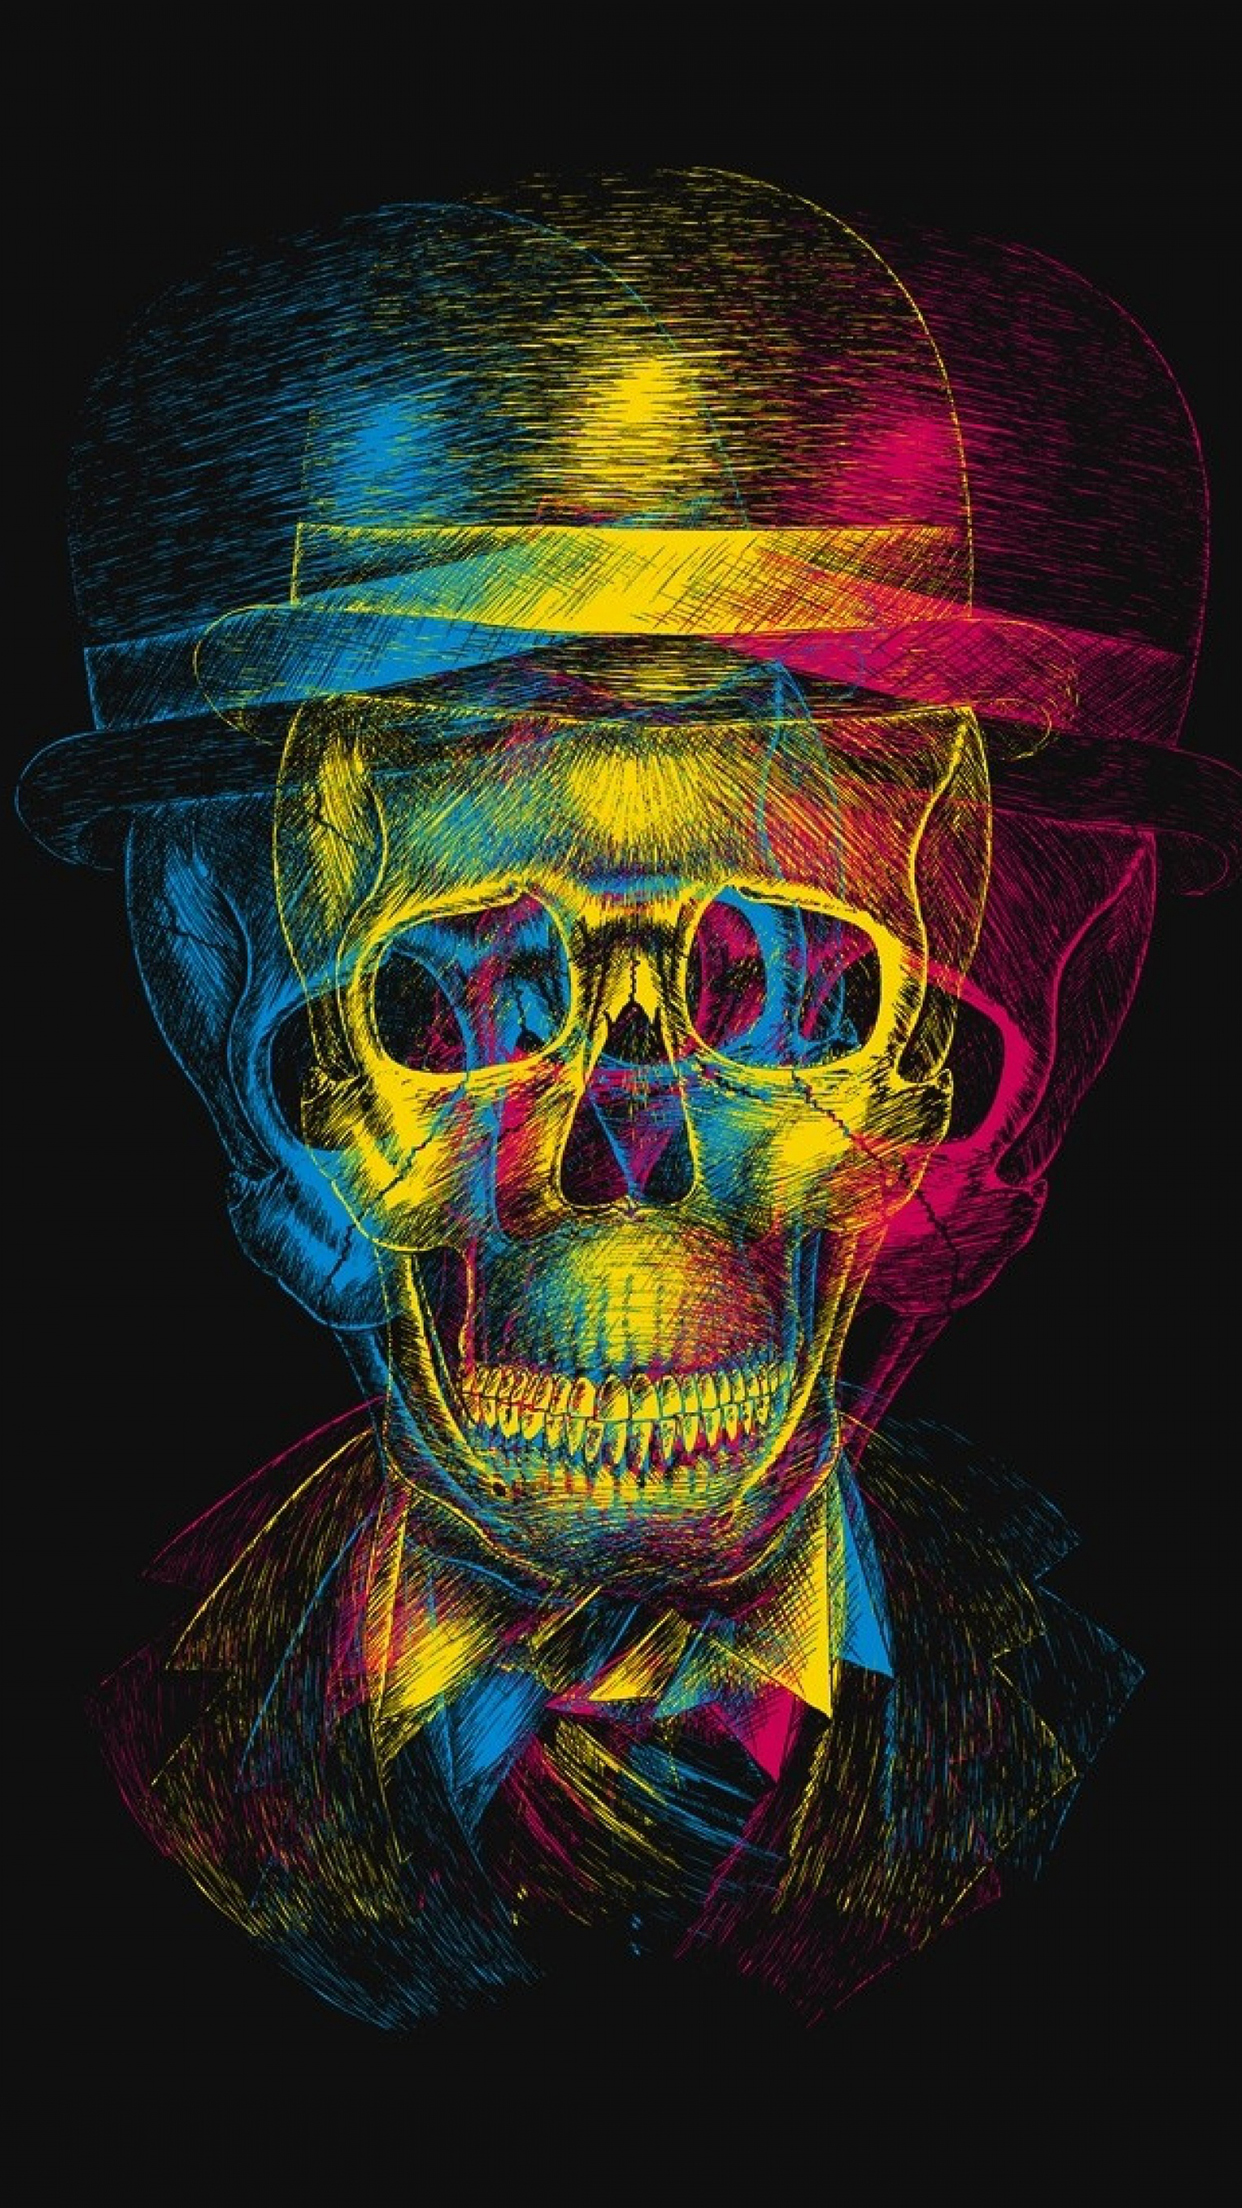 Skull 3 3Wallpapers iPhone Parallax 3Wallpapers : notre sélection de fonds décran du 13/07/2017